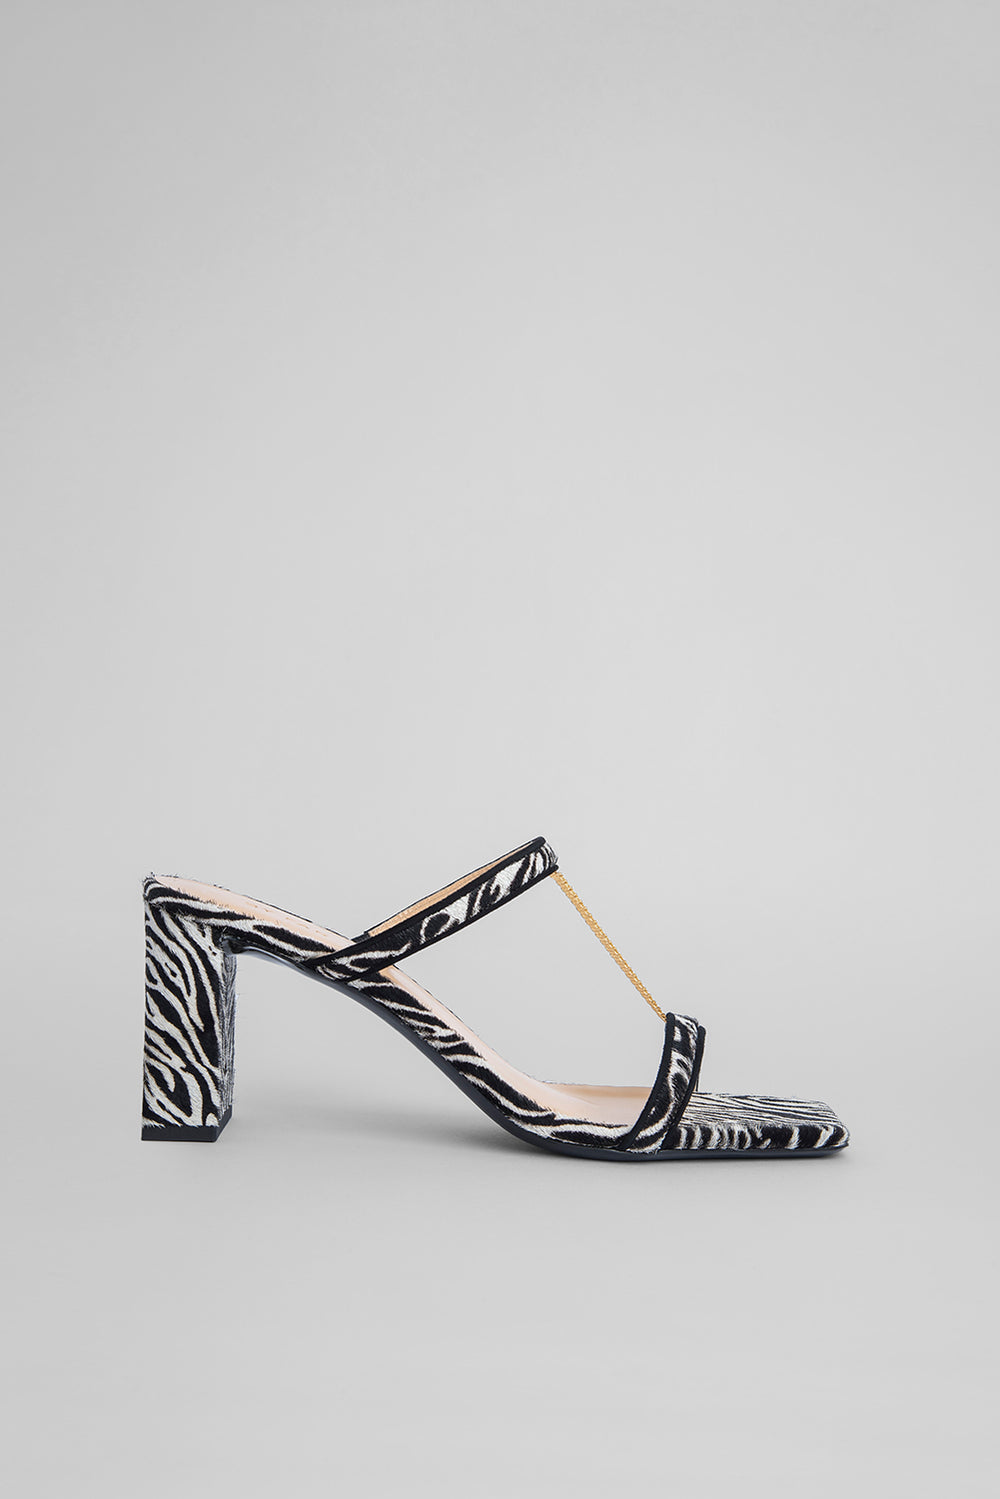 Chloe Zebra-Print Pony Hair Leather